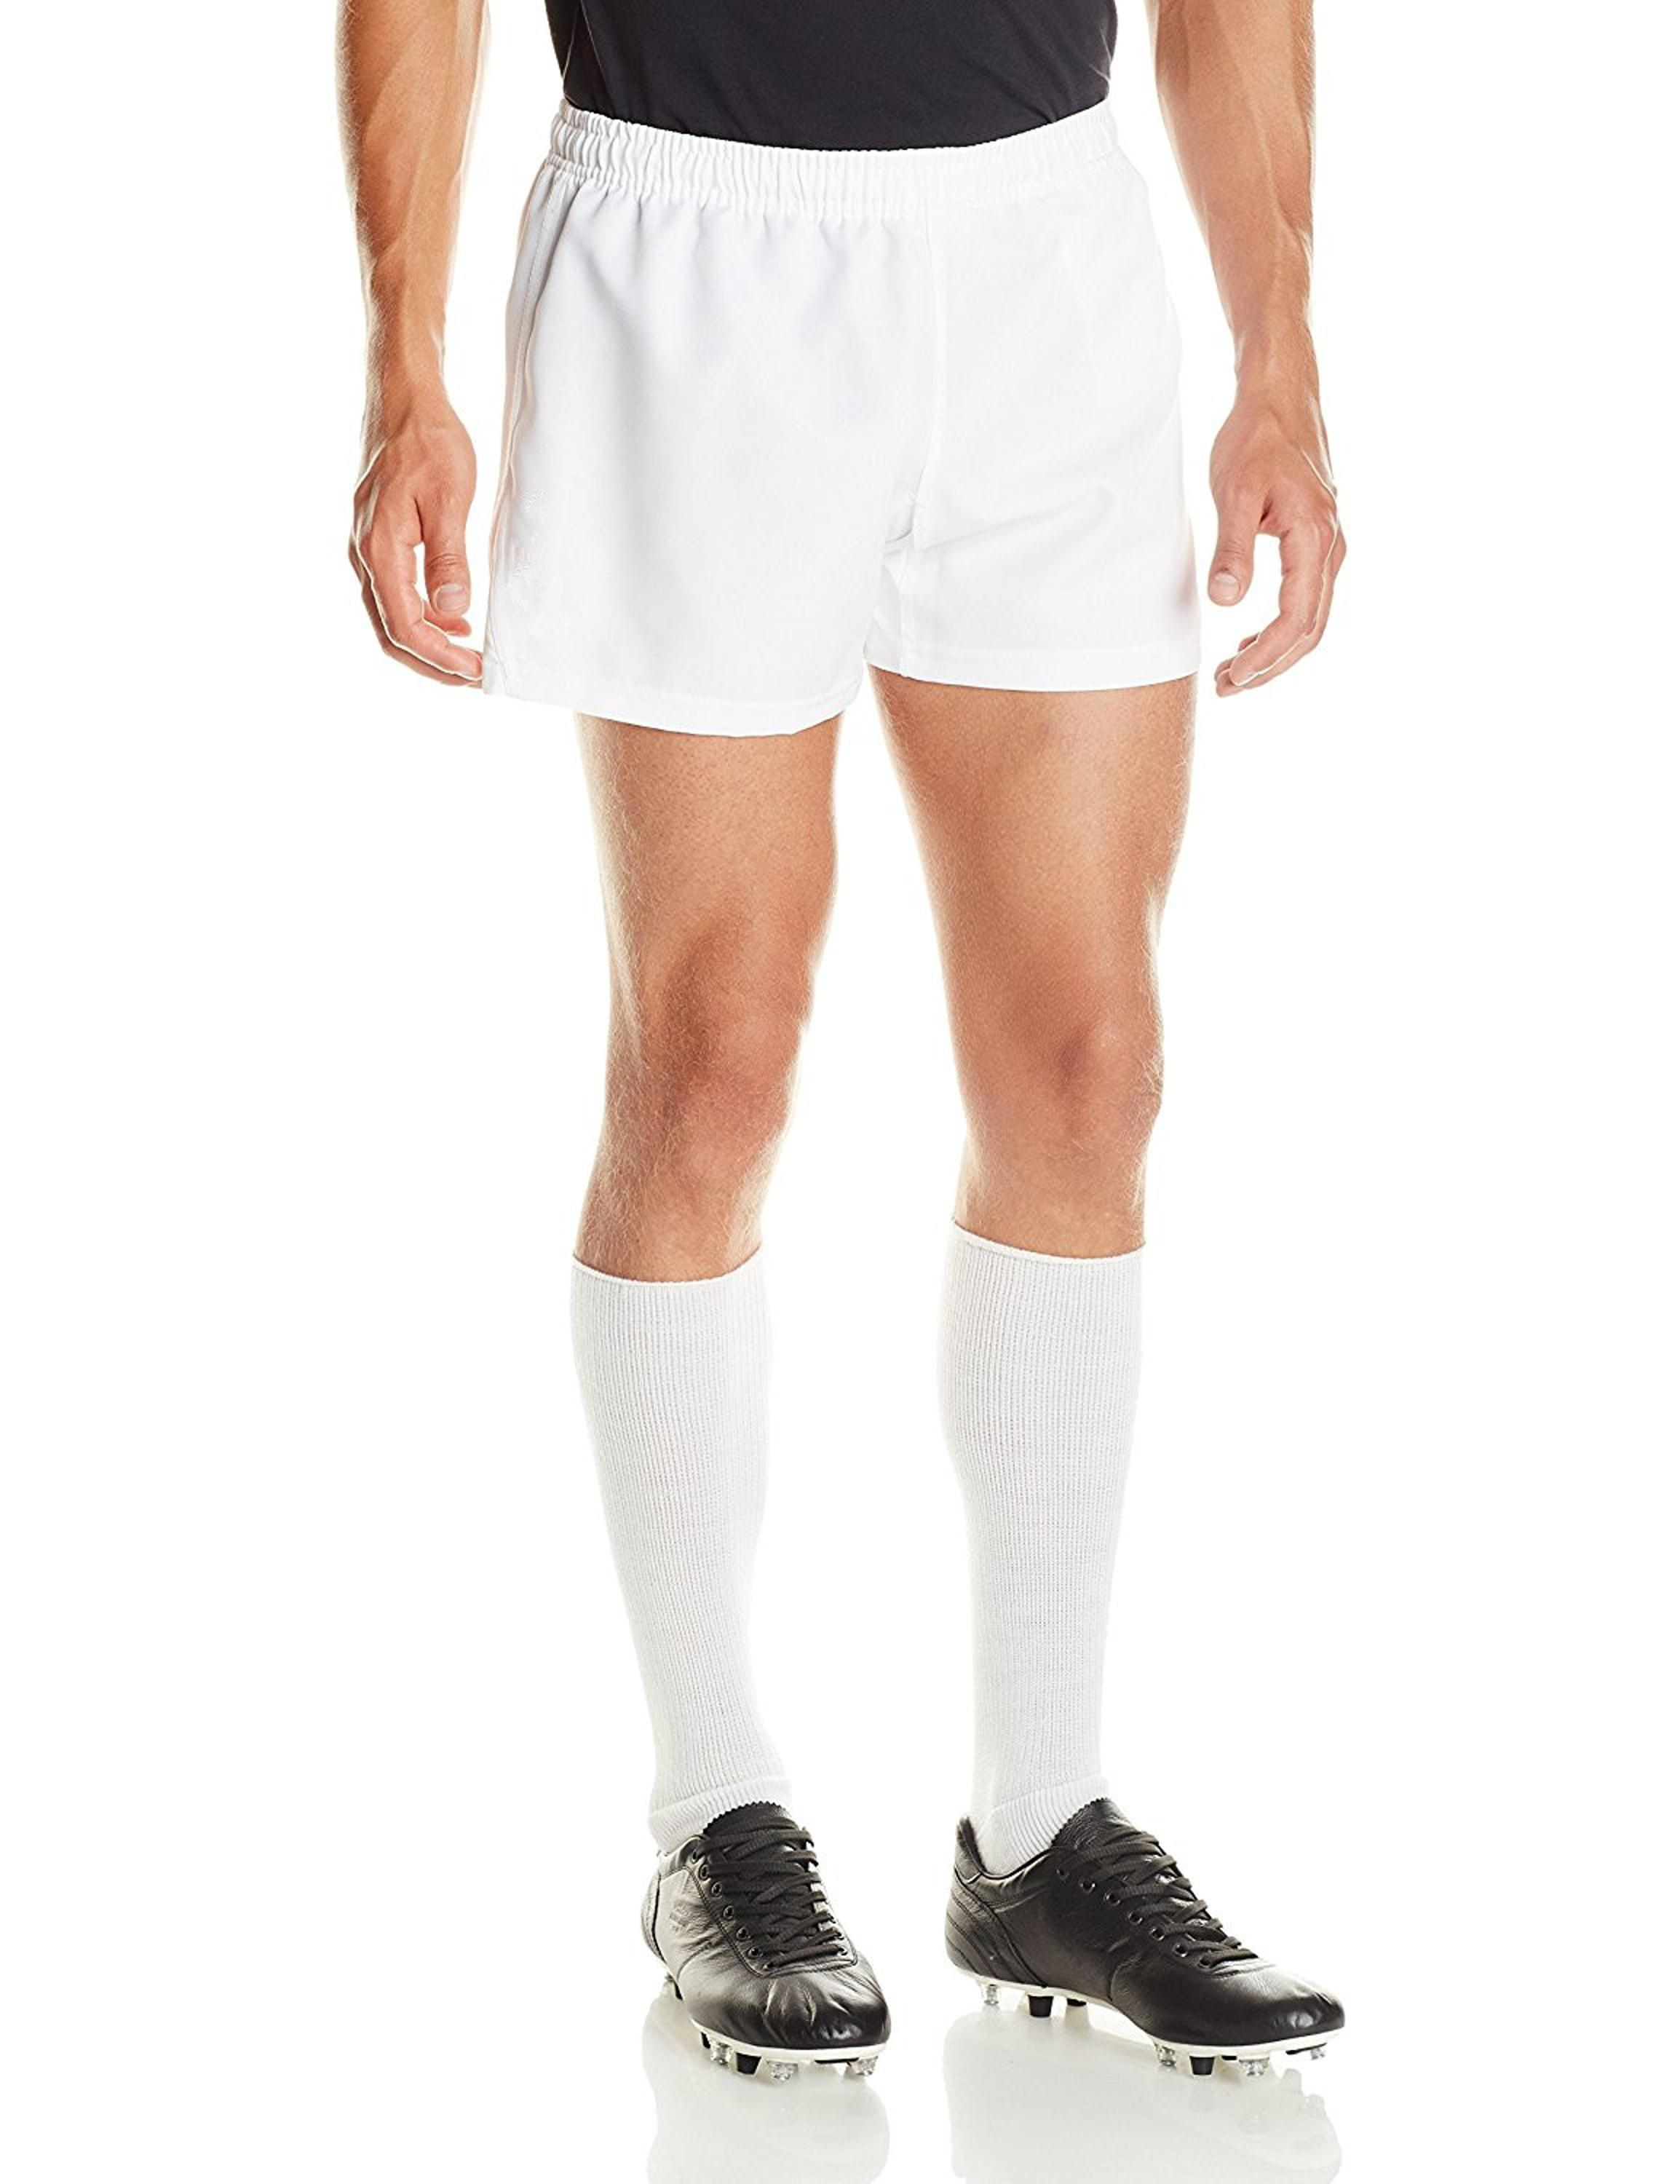 rugby shorts wholesale (3).jpg